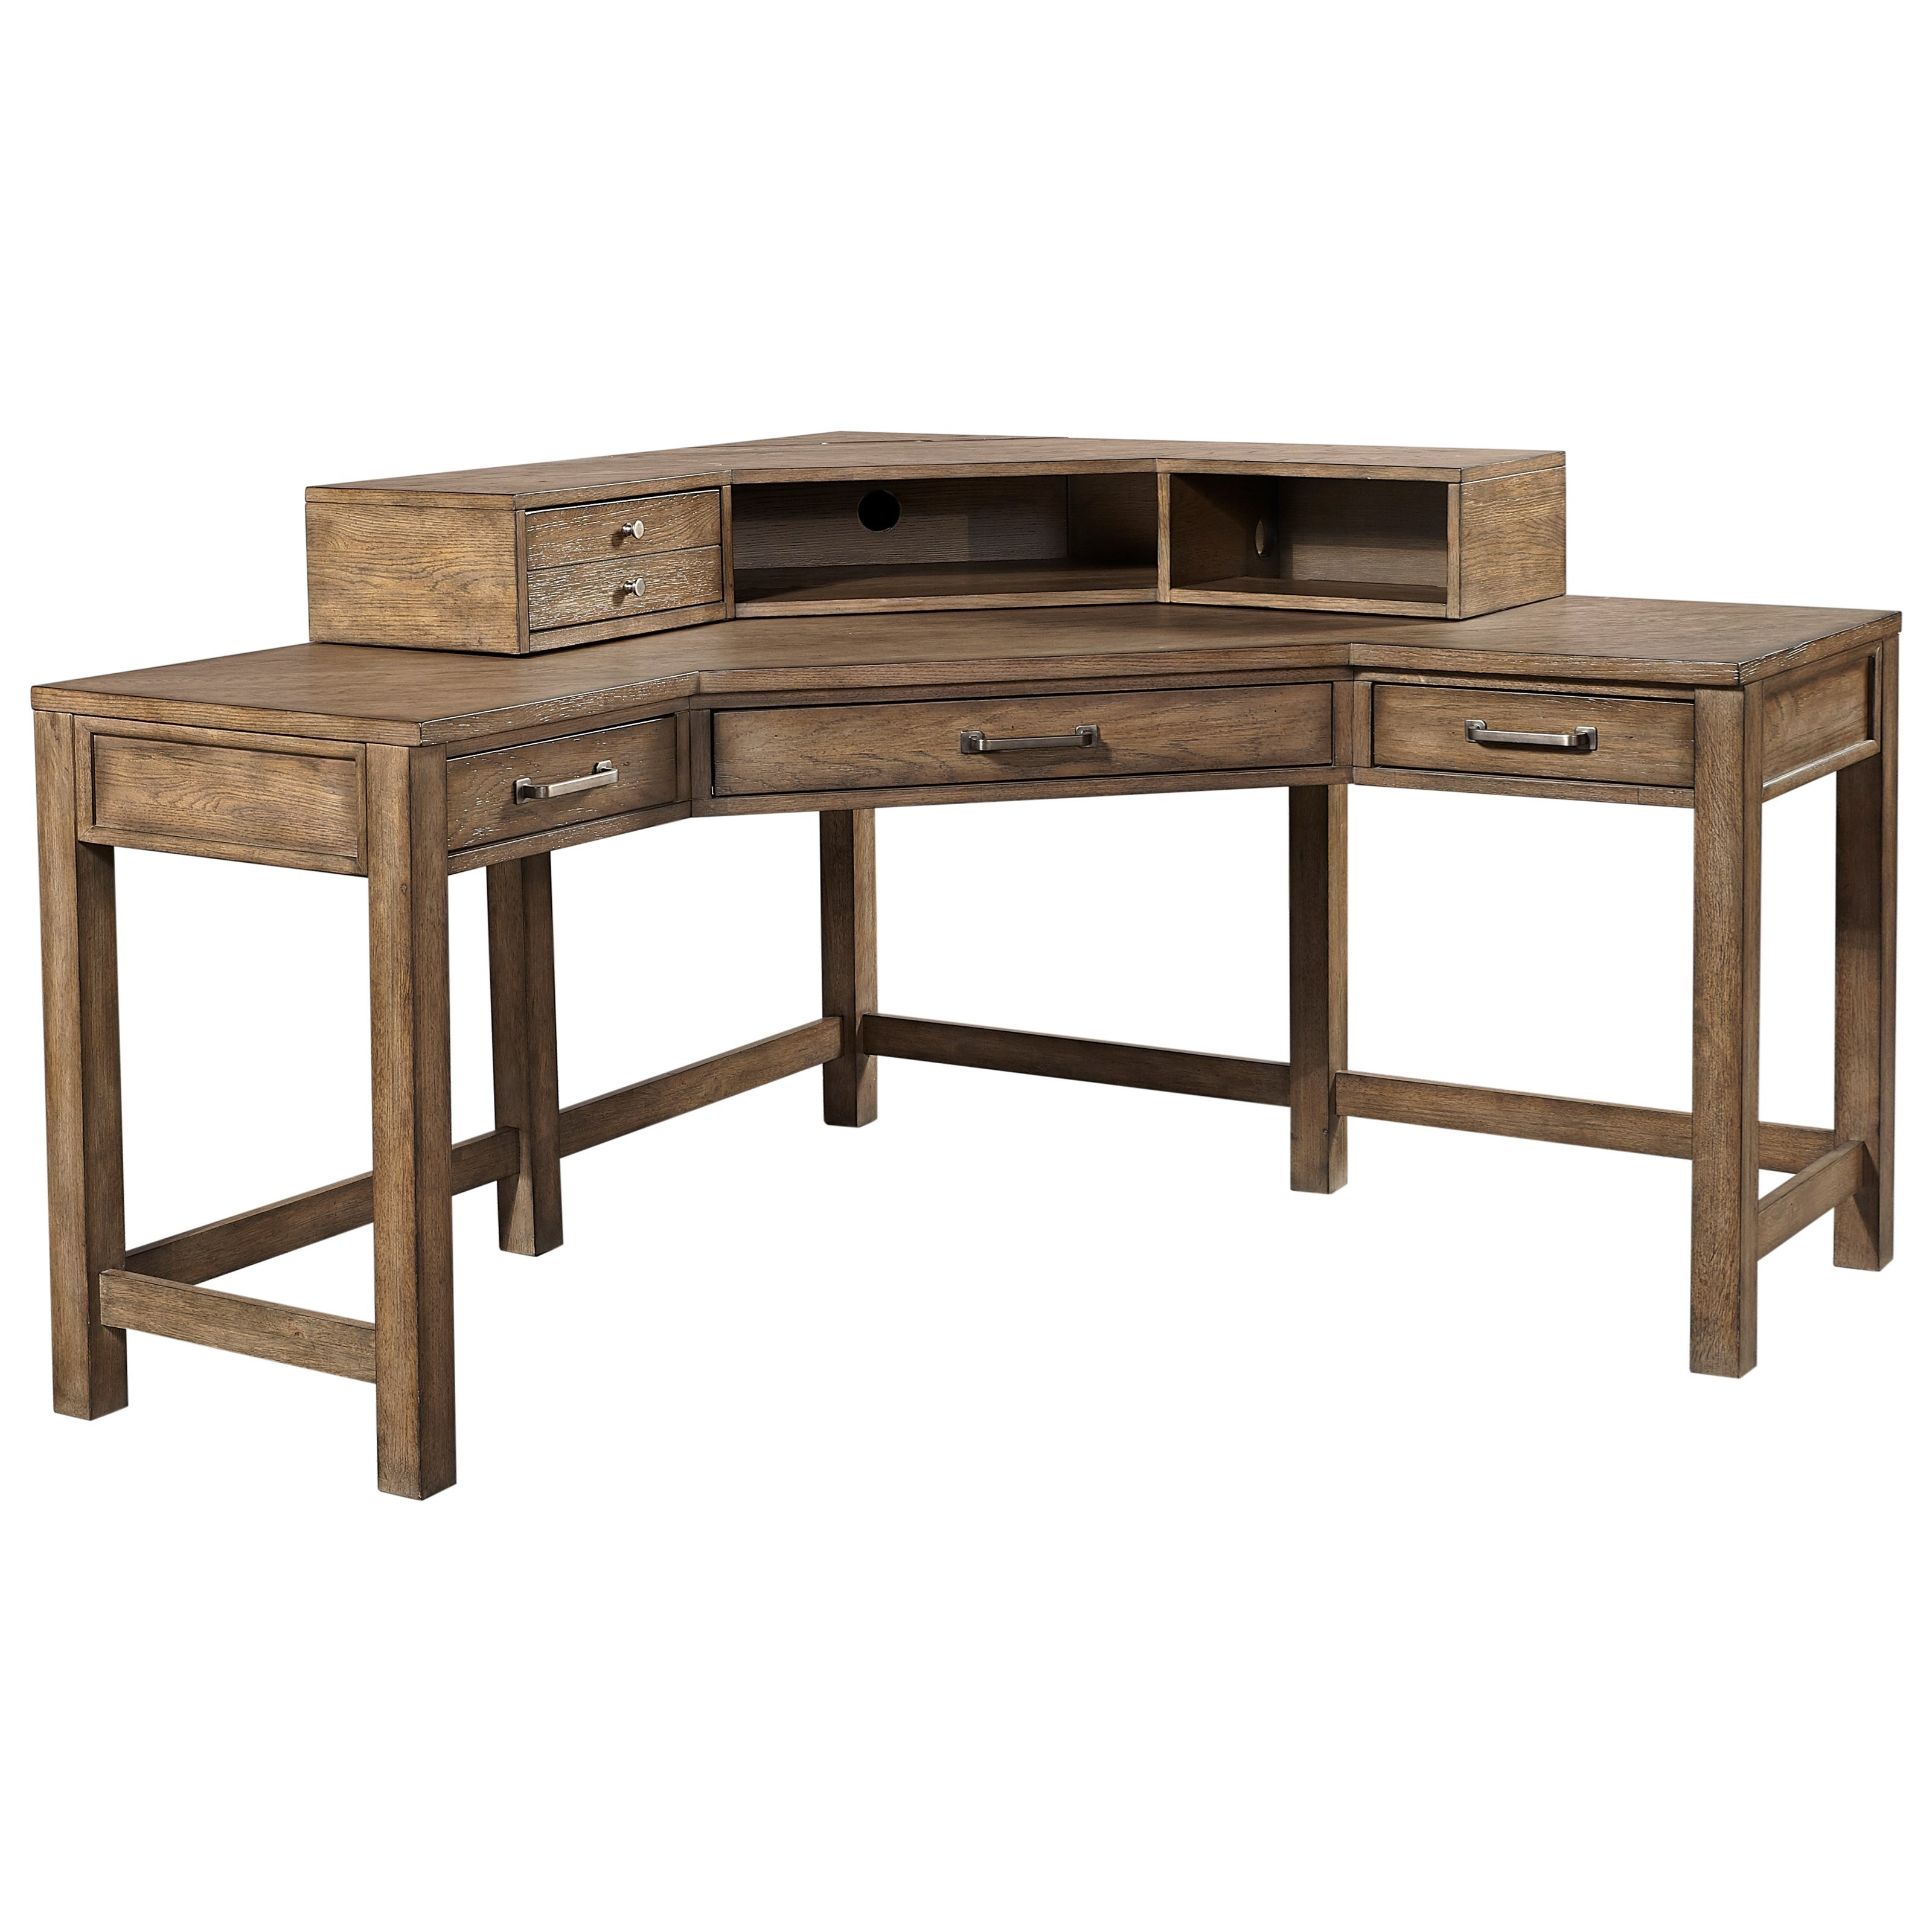 Terrace Point Corner Desk and Hutch by Aspenhome at Stoney Creek Furniture